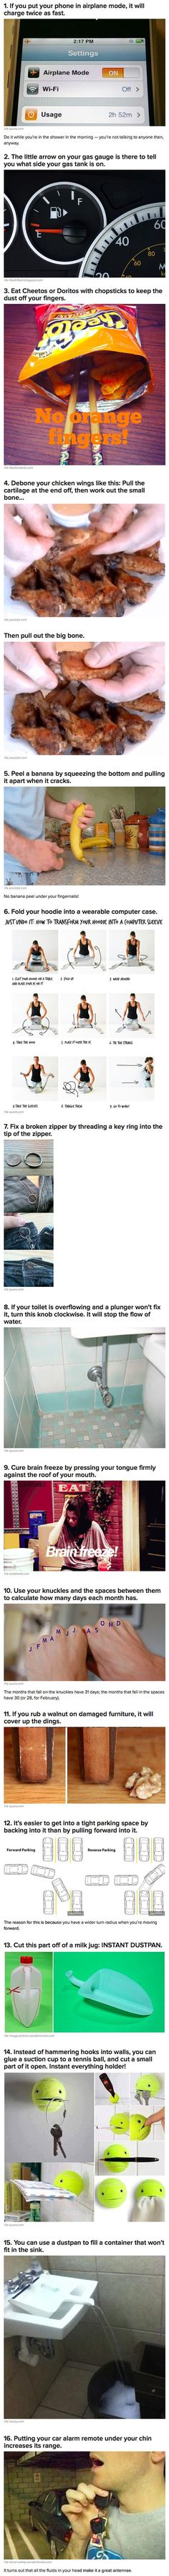 Here are some extremely simple life hacks that will make your life easier.